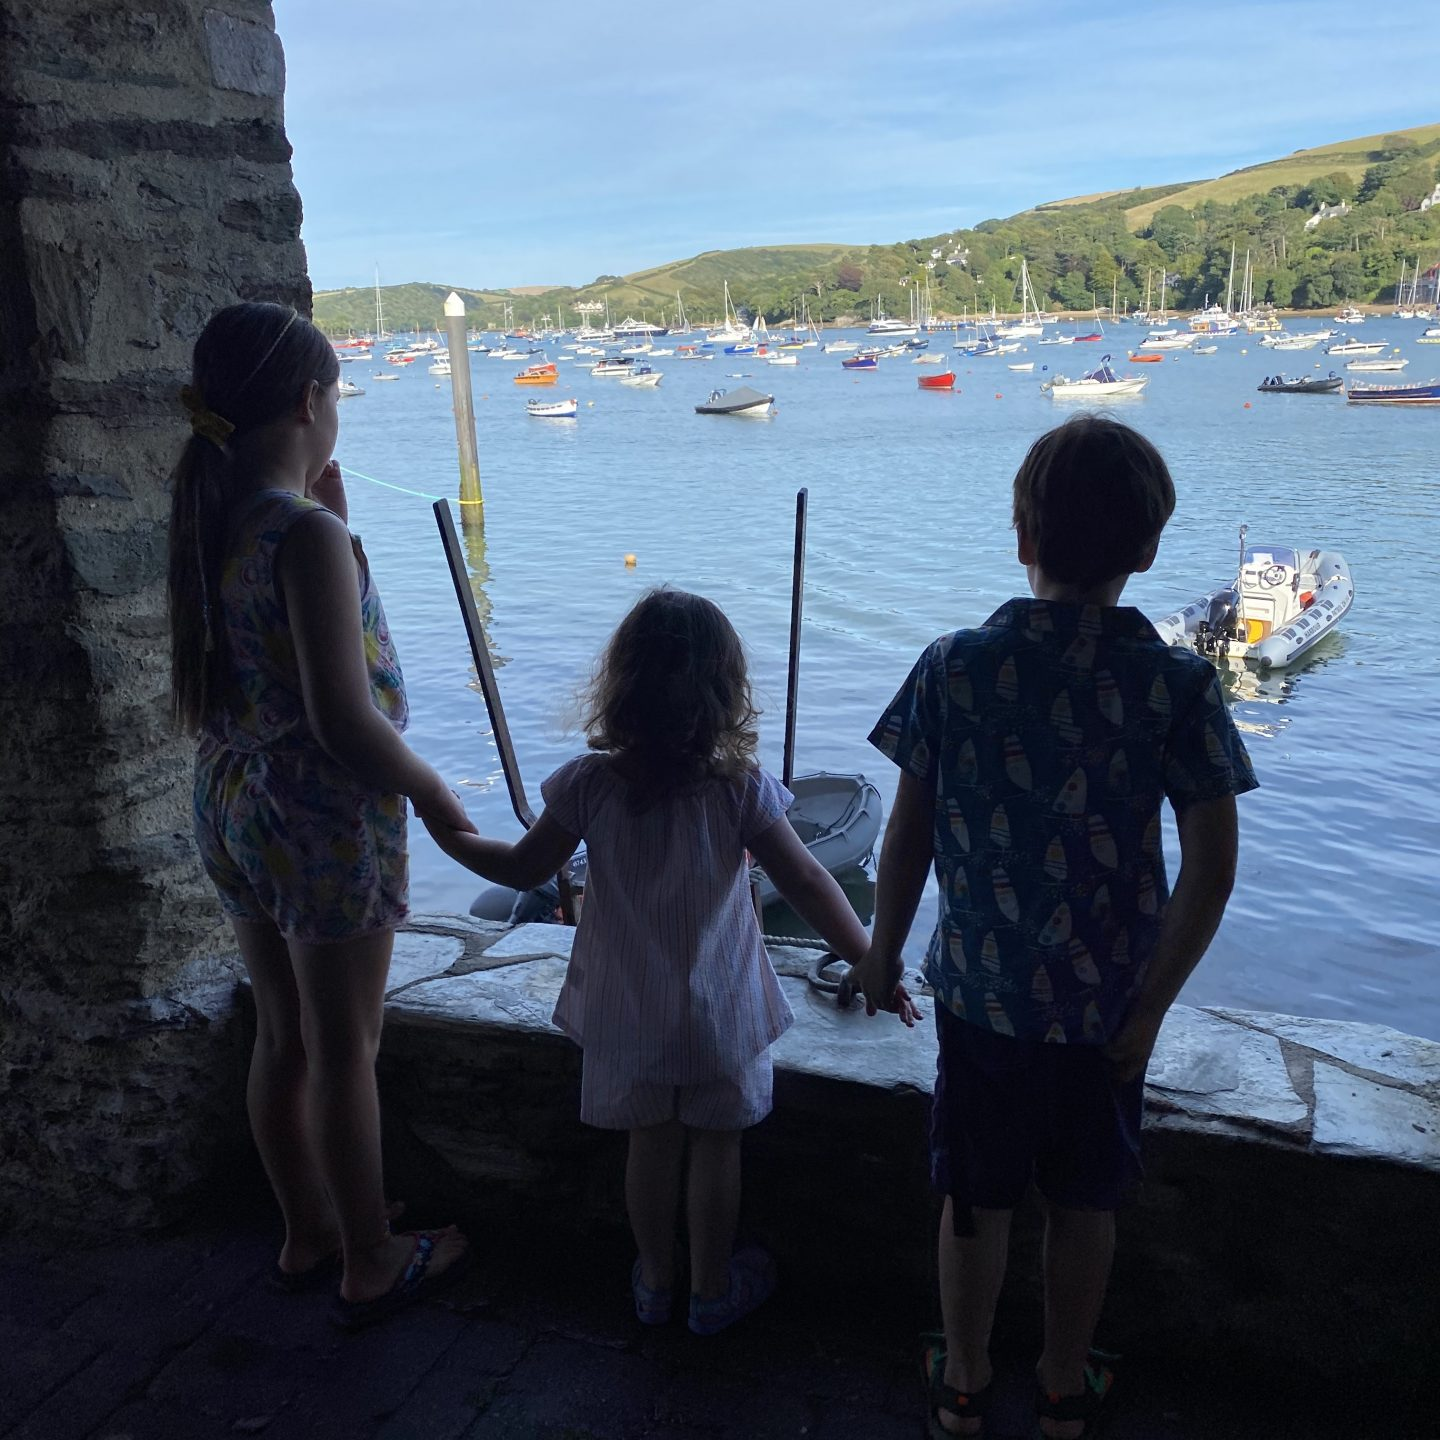 A view from Salcombe harbour with 3 children looking at boats